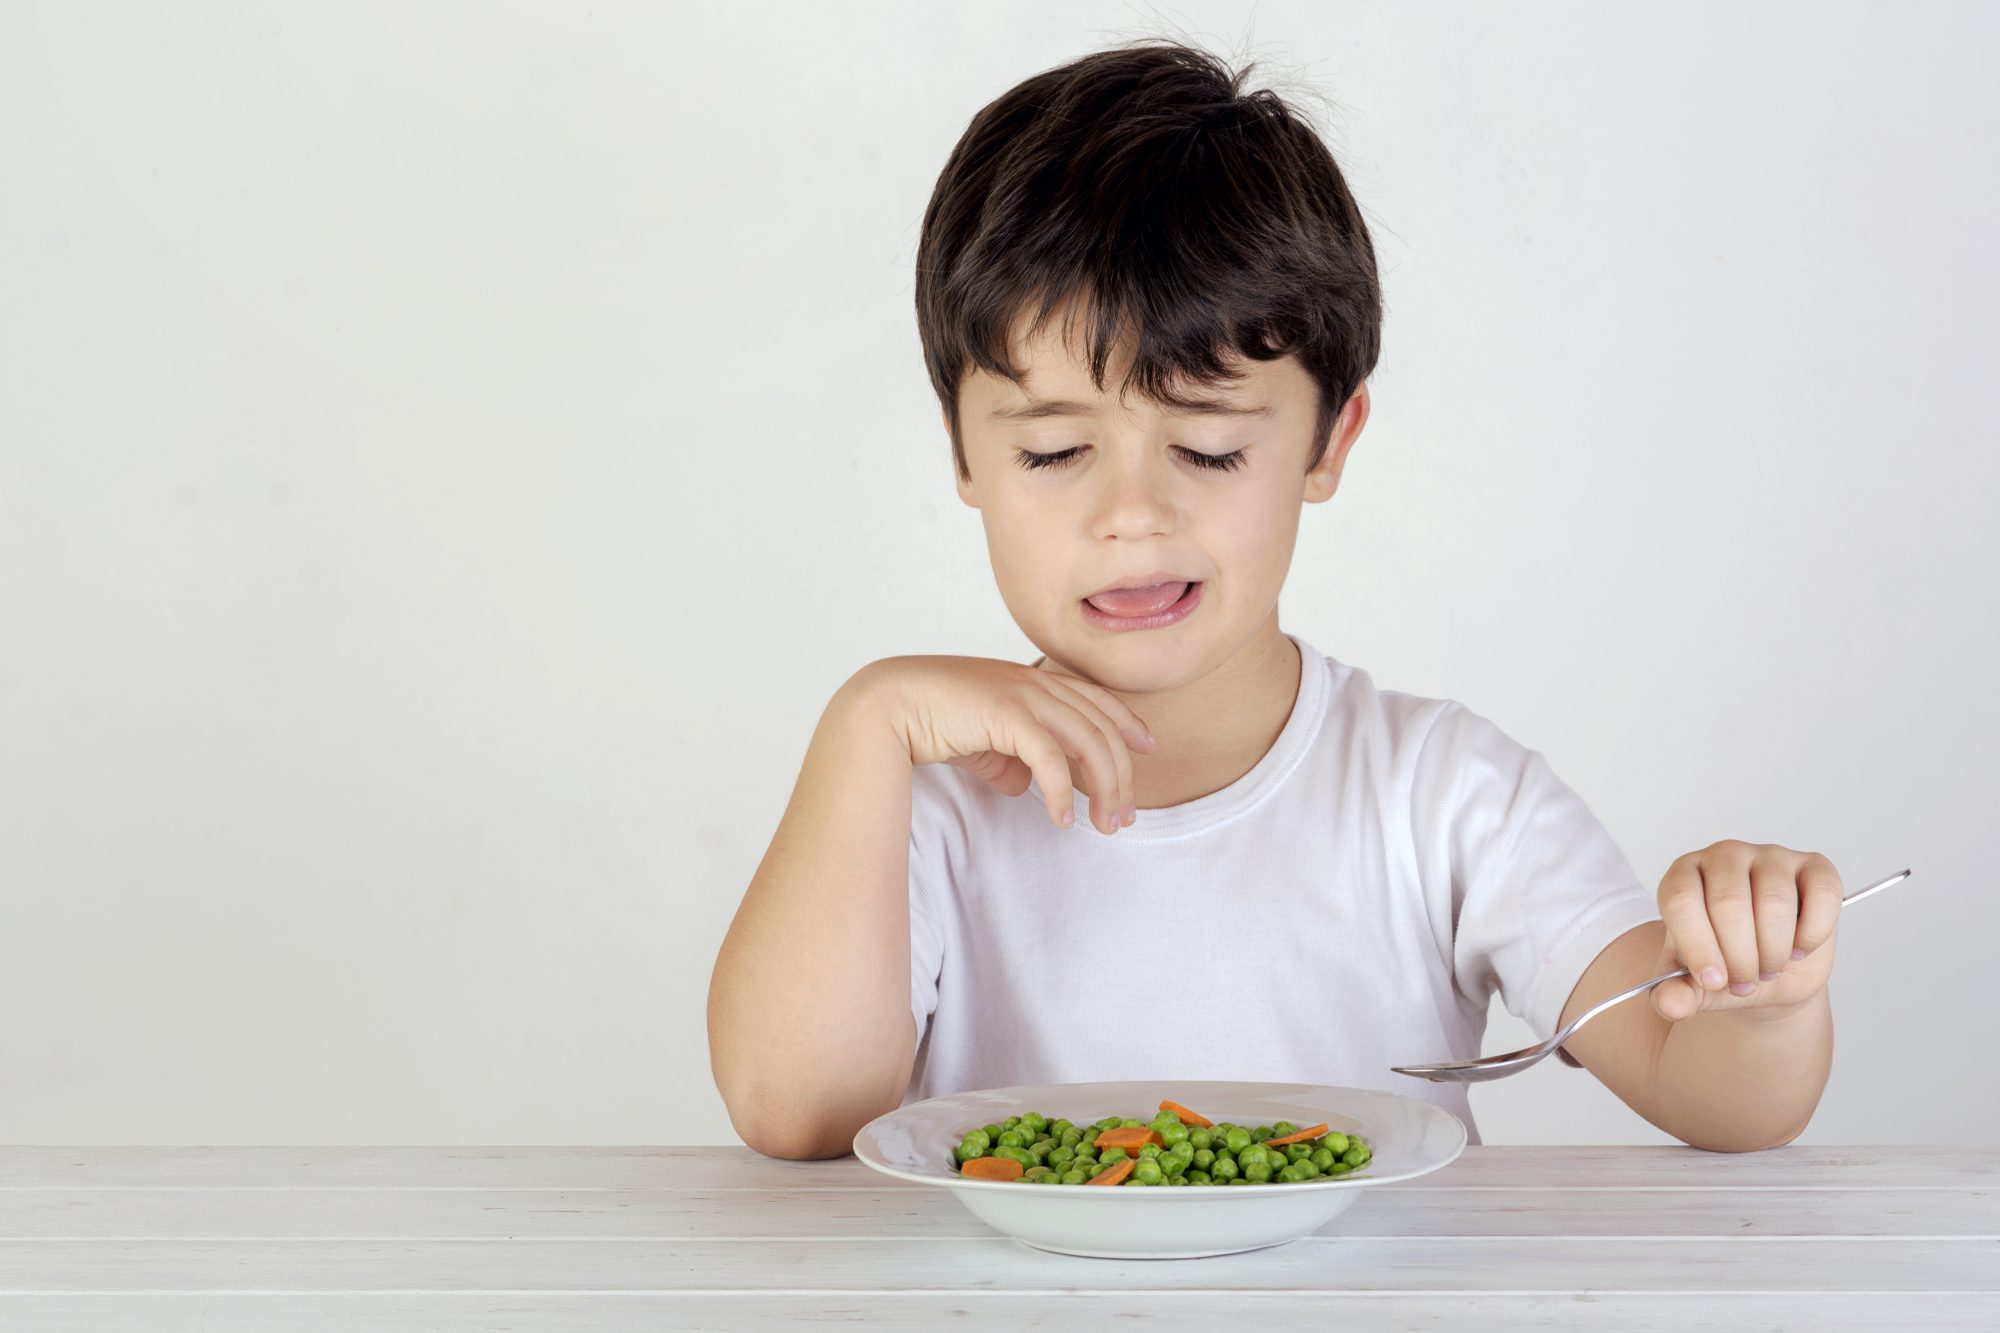 Picky eaters Getty 9/29/20